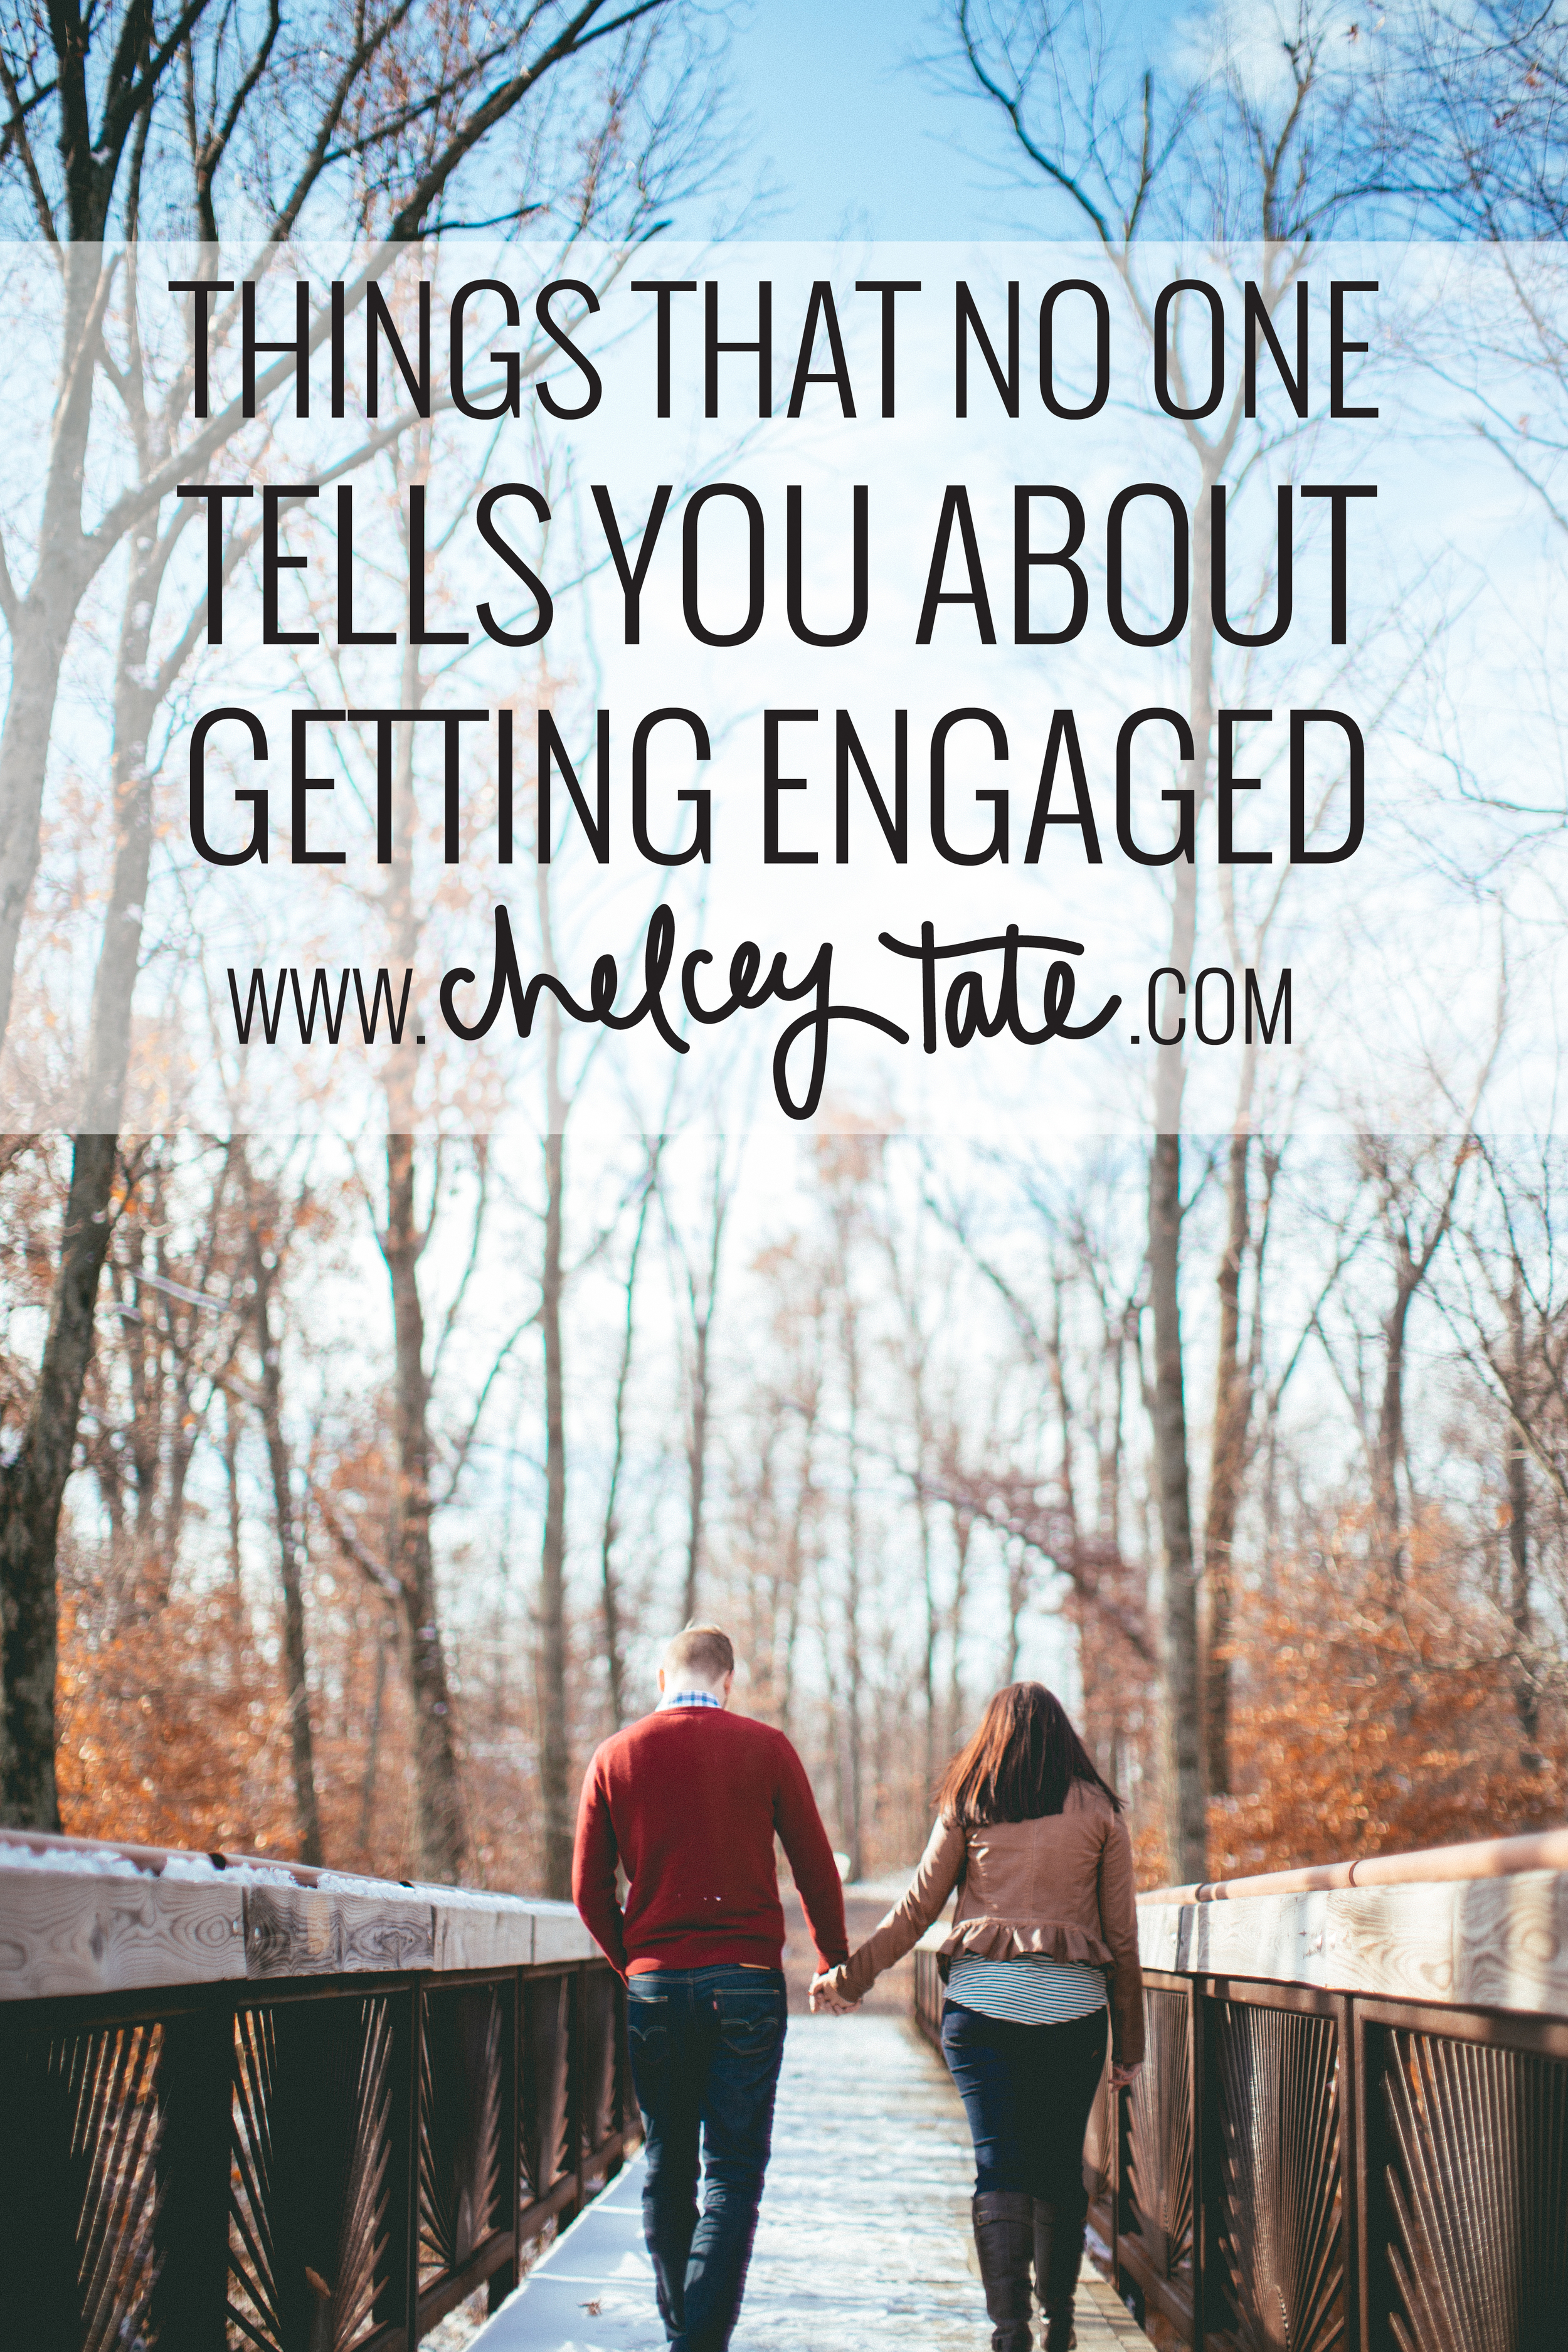 Five Things That No One Tells You About Getting Engaged